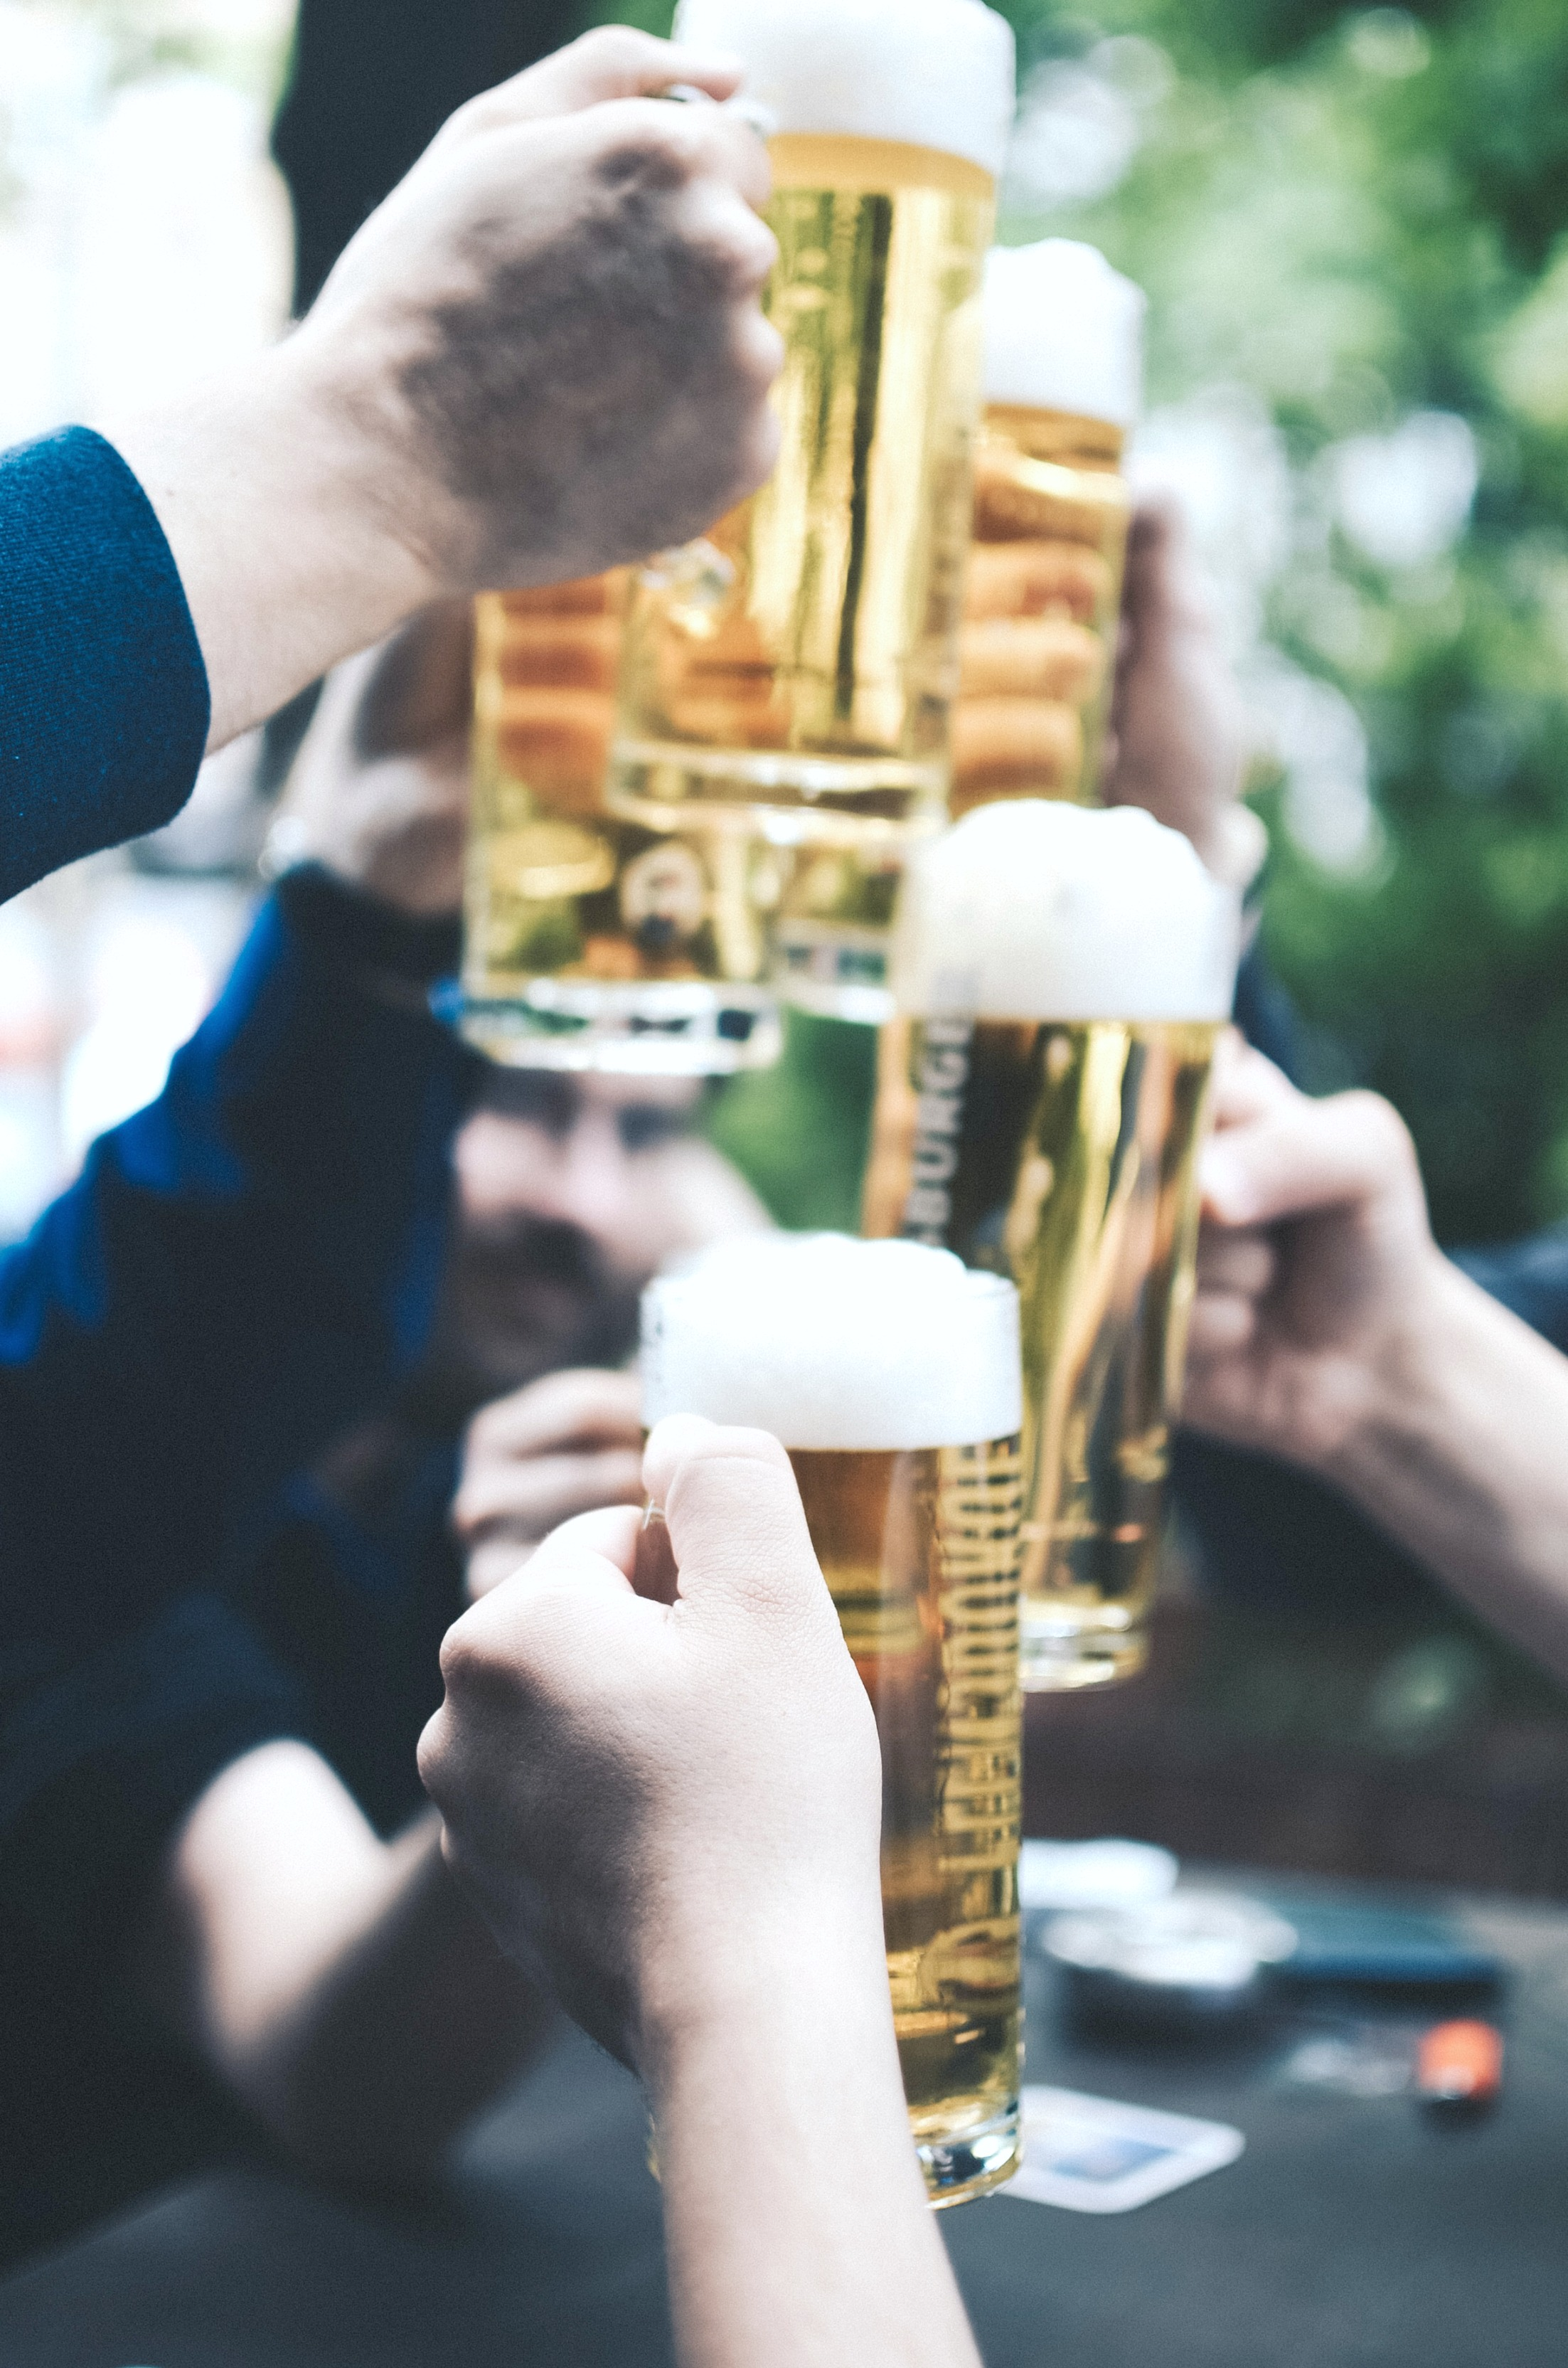 A group of men hold up pints of beer and cheer a good night out.